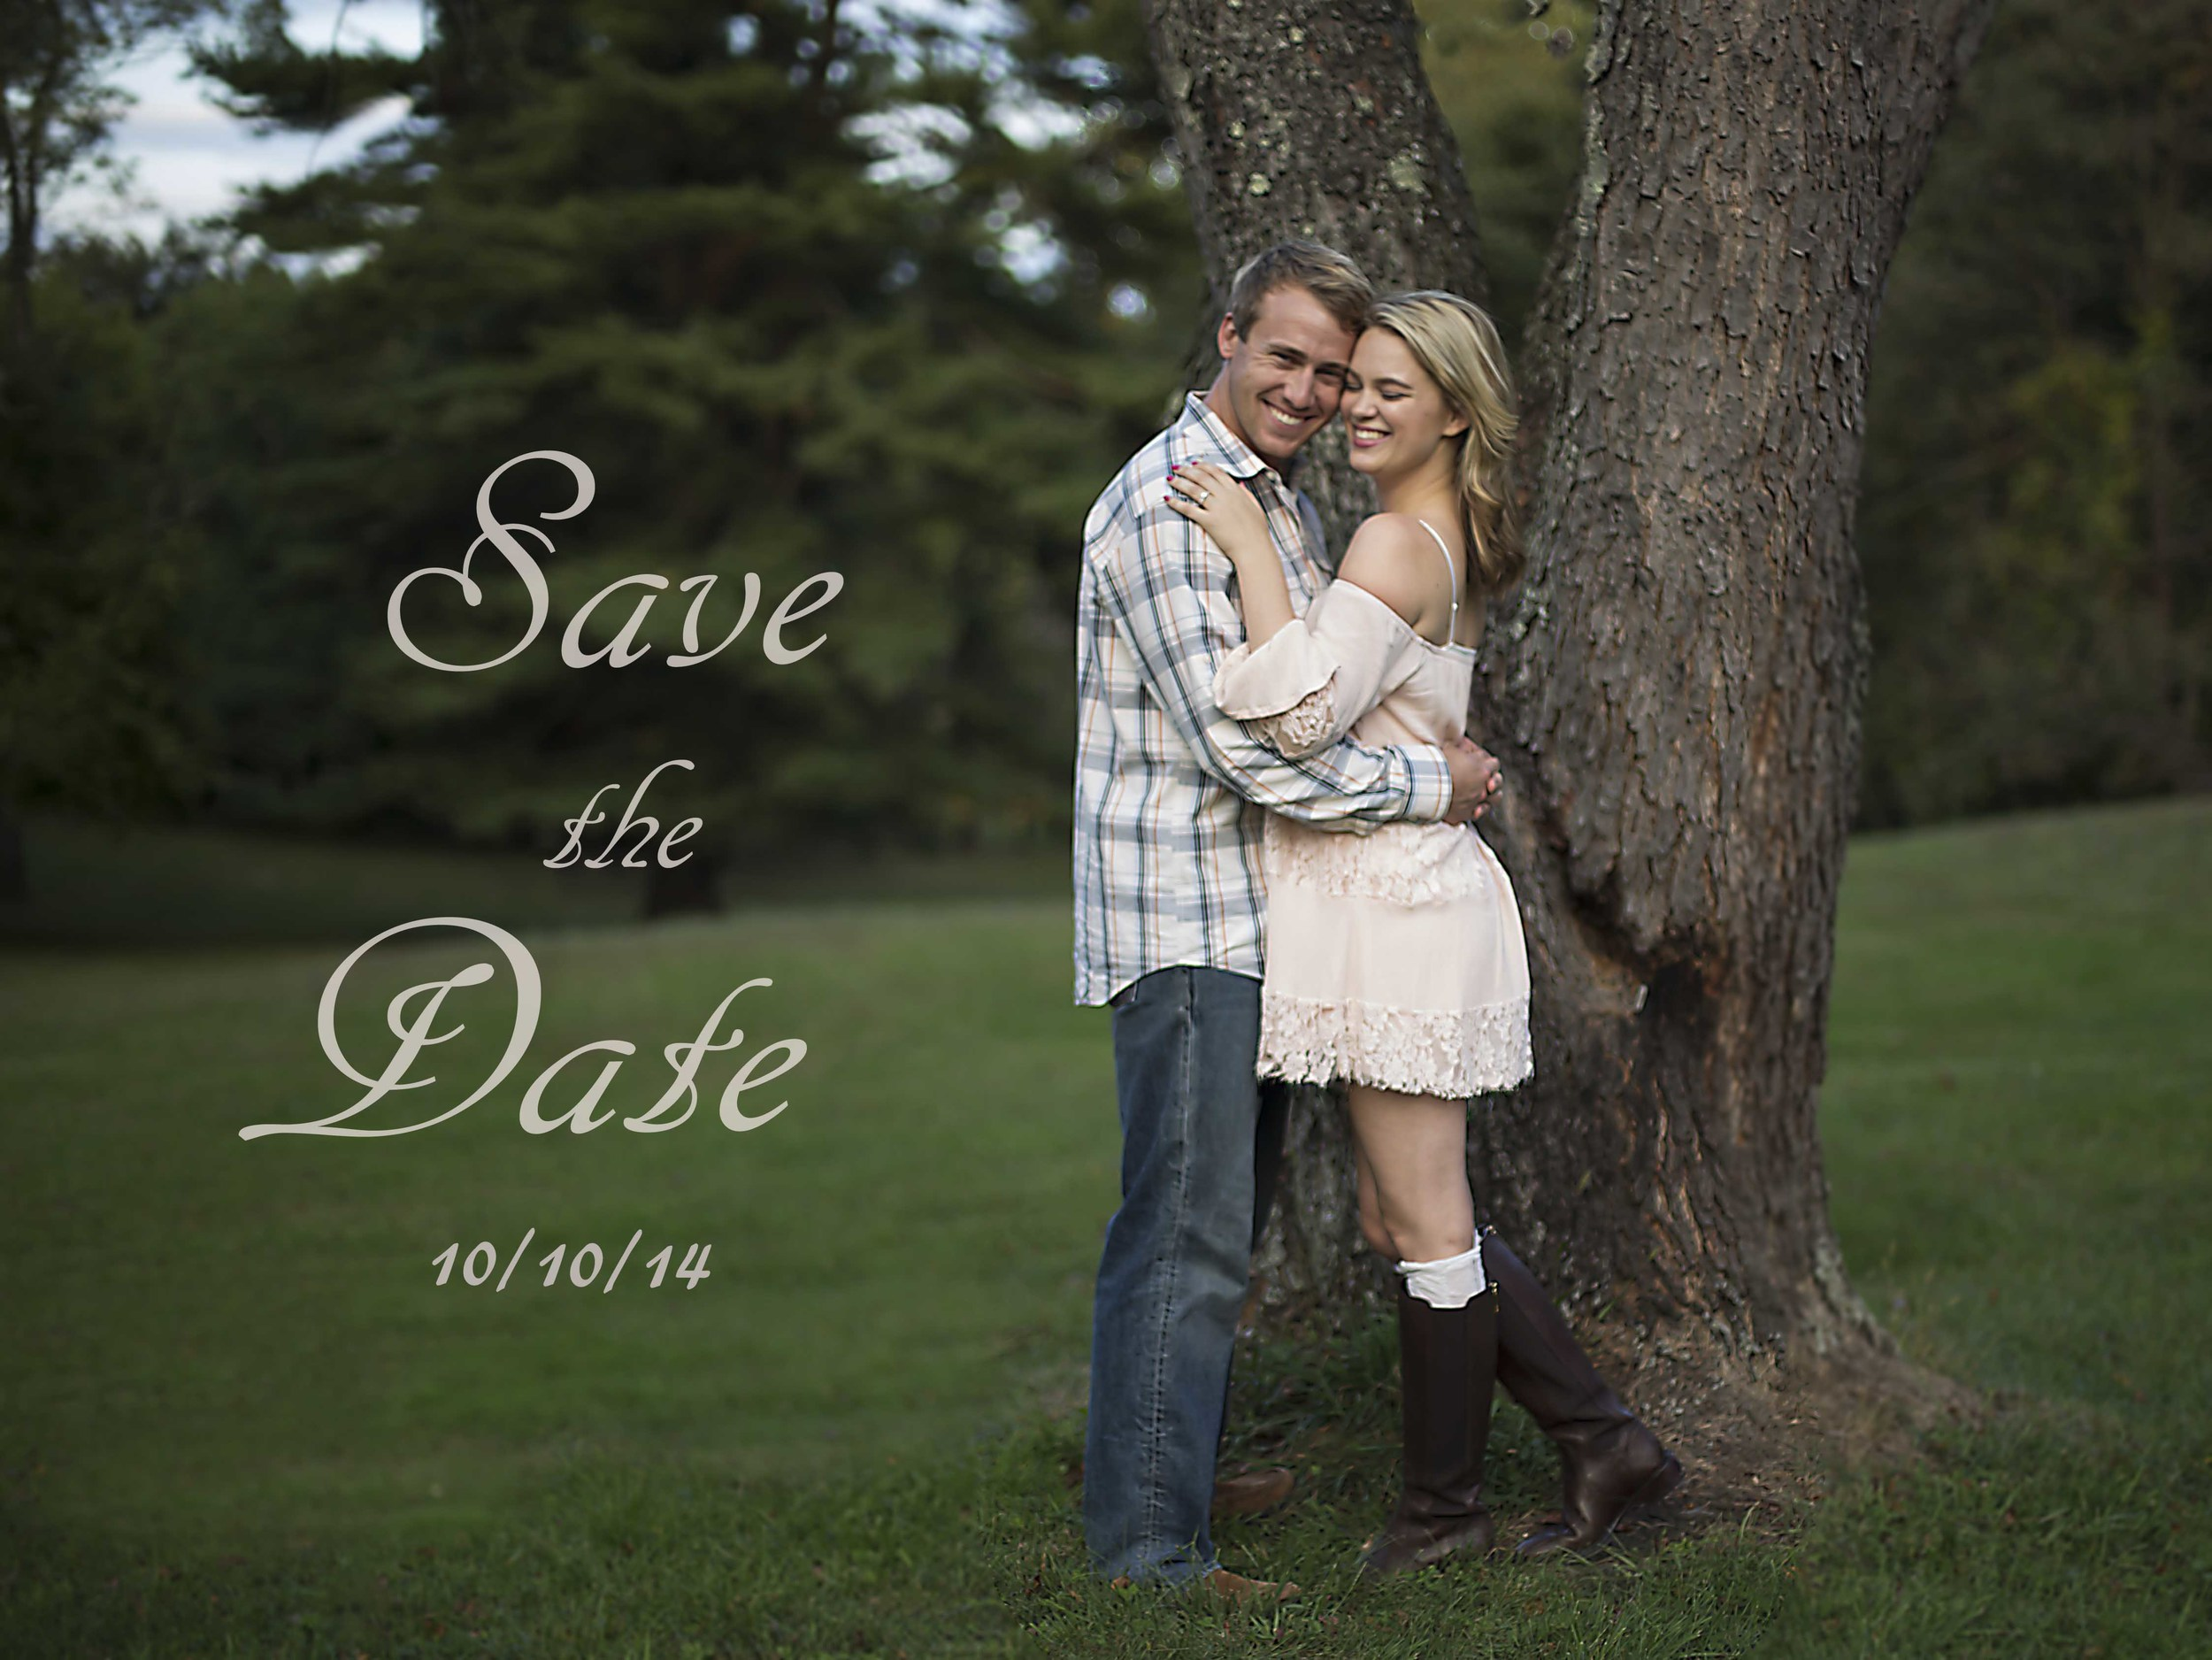 IMG_6176 edit save the date.jpg